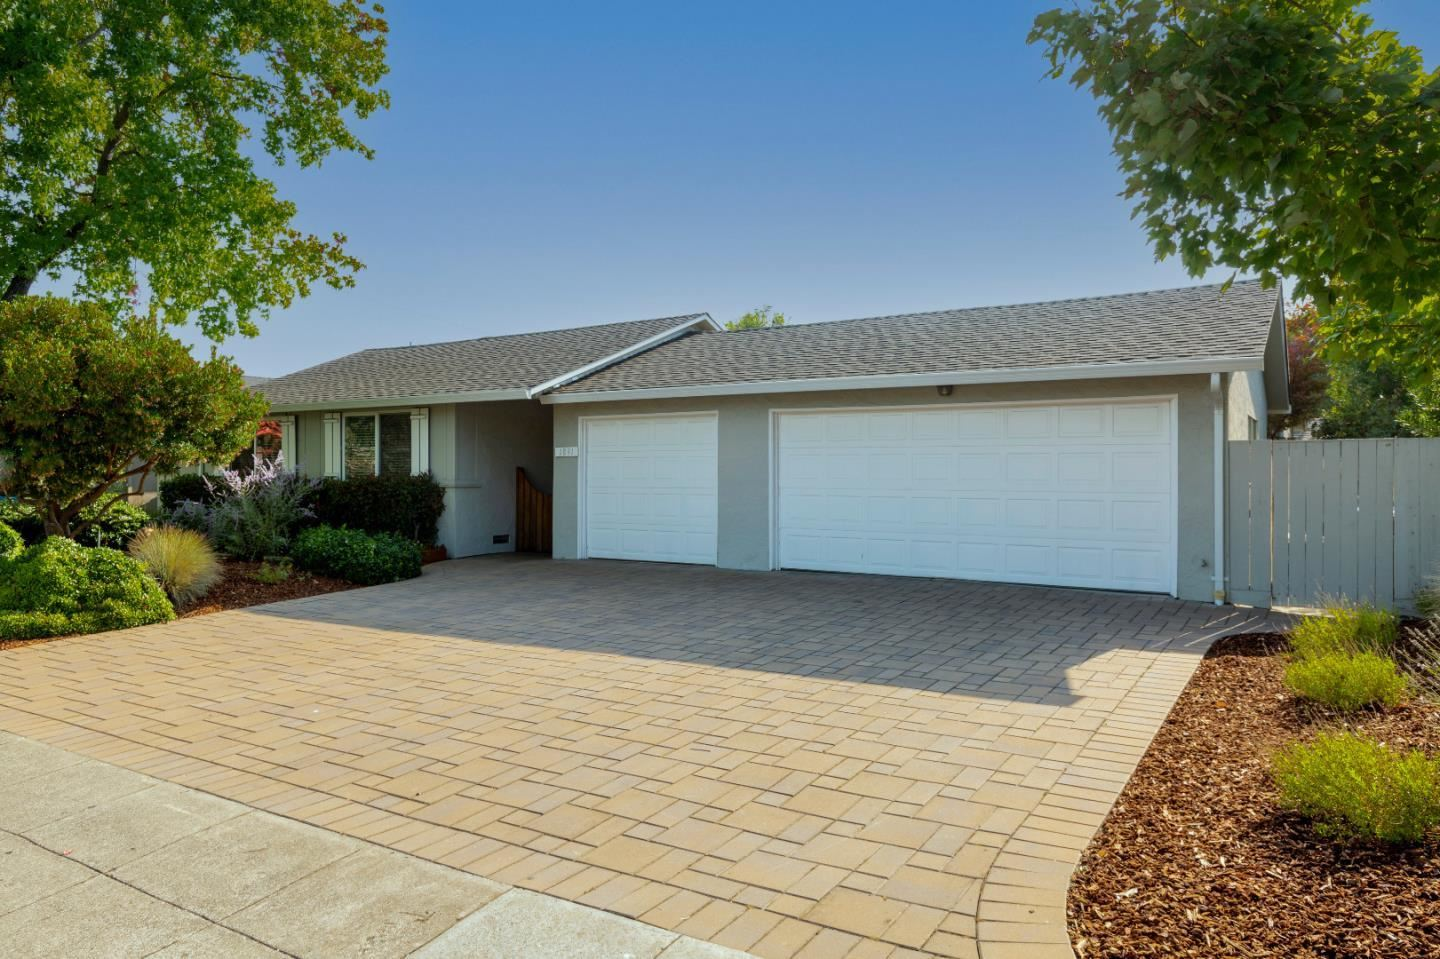 Photo for 1891 South Springer Road, MOUNTAIN VIEW, CA 94040 (MLS # ML81861153)